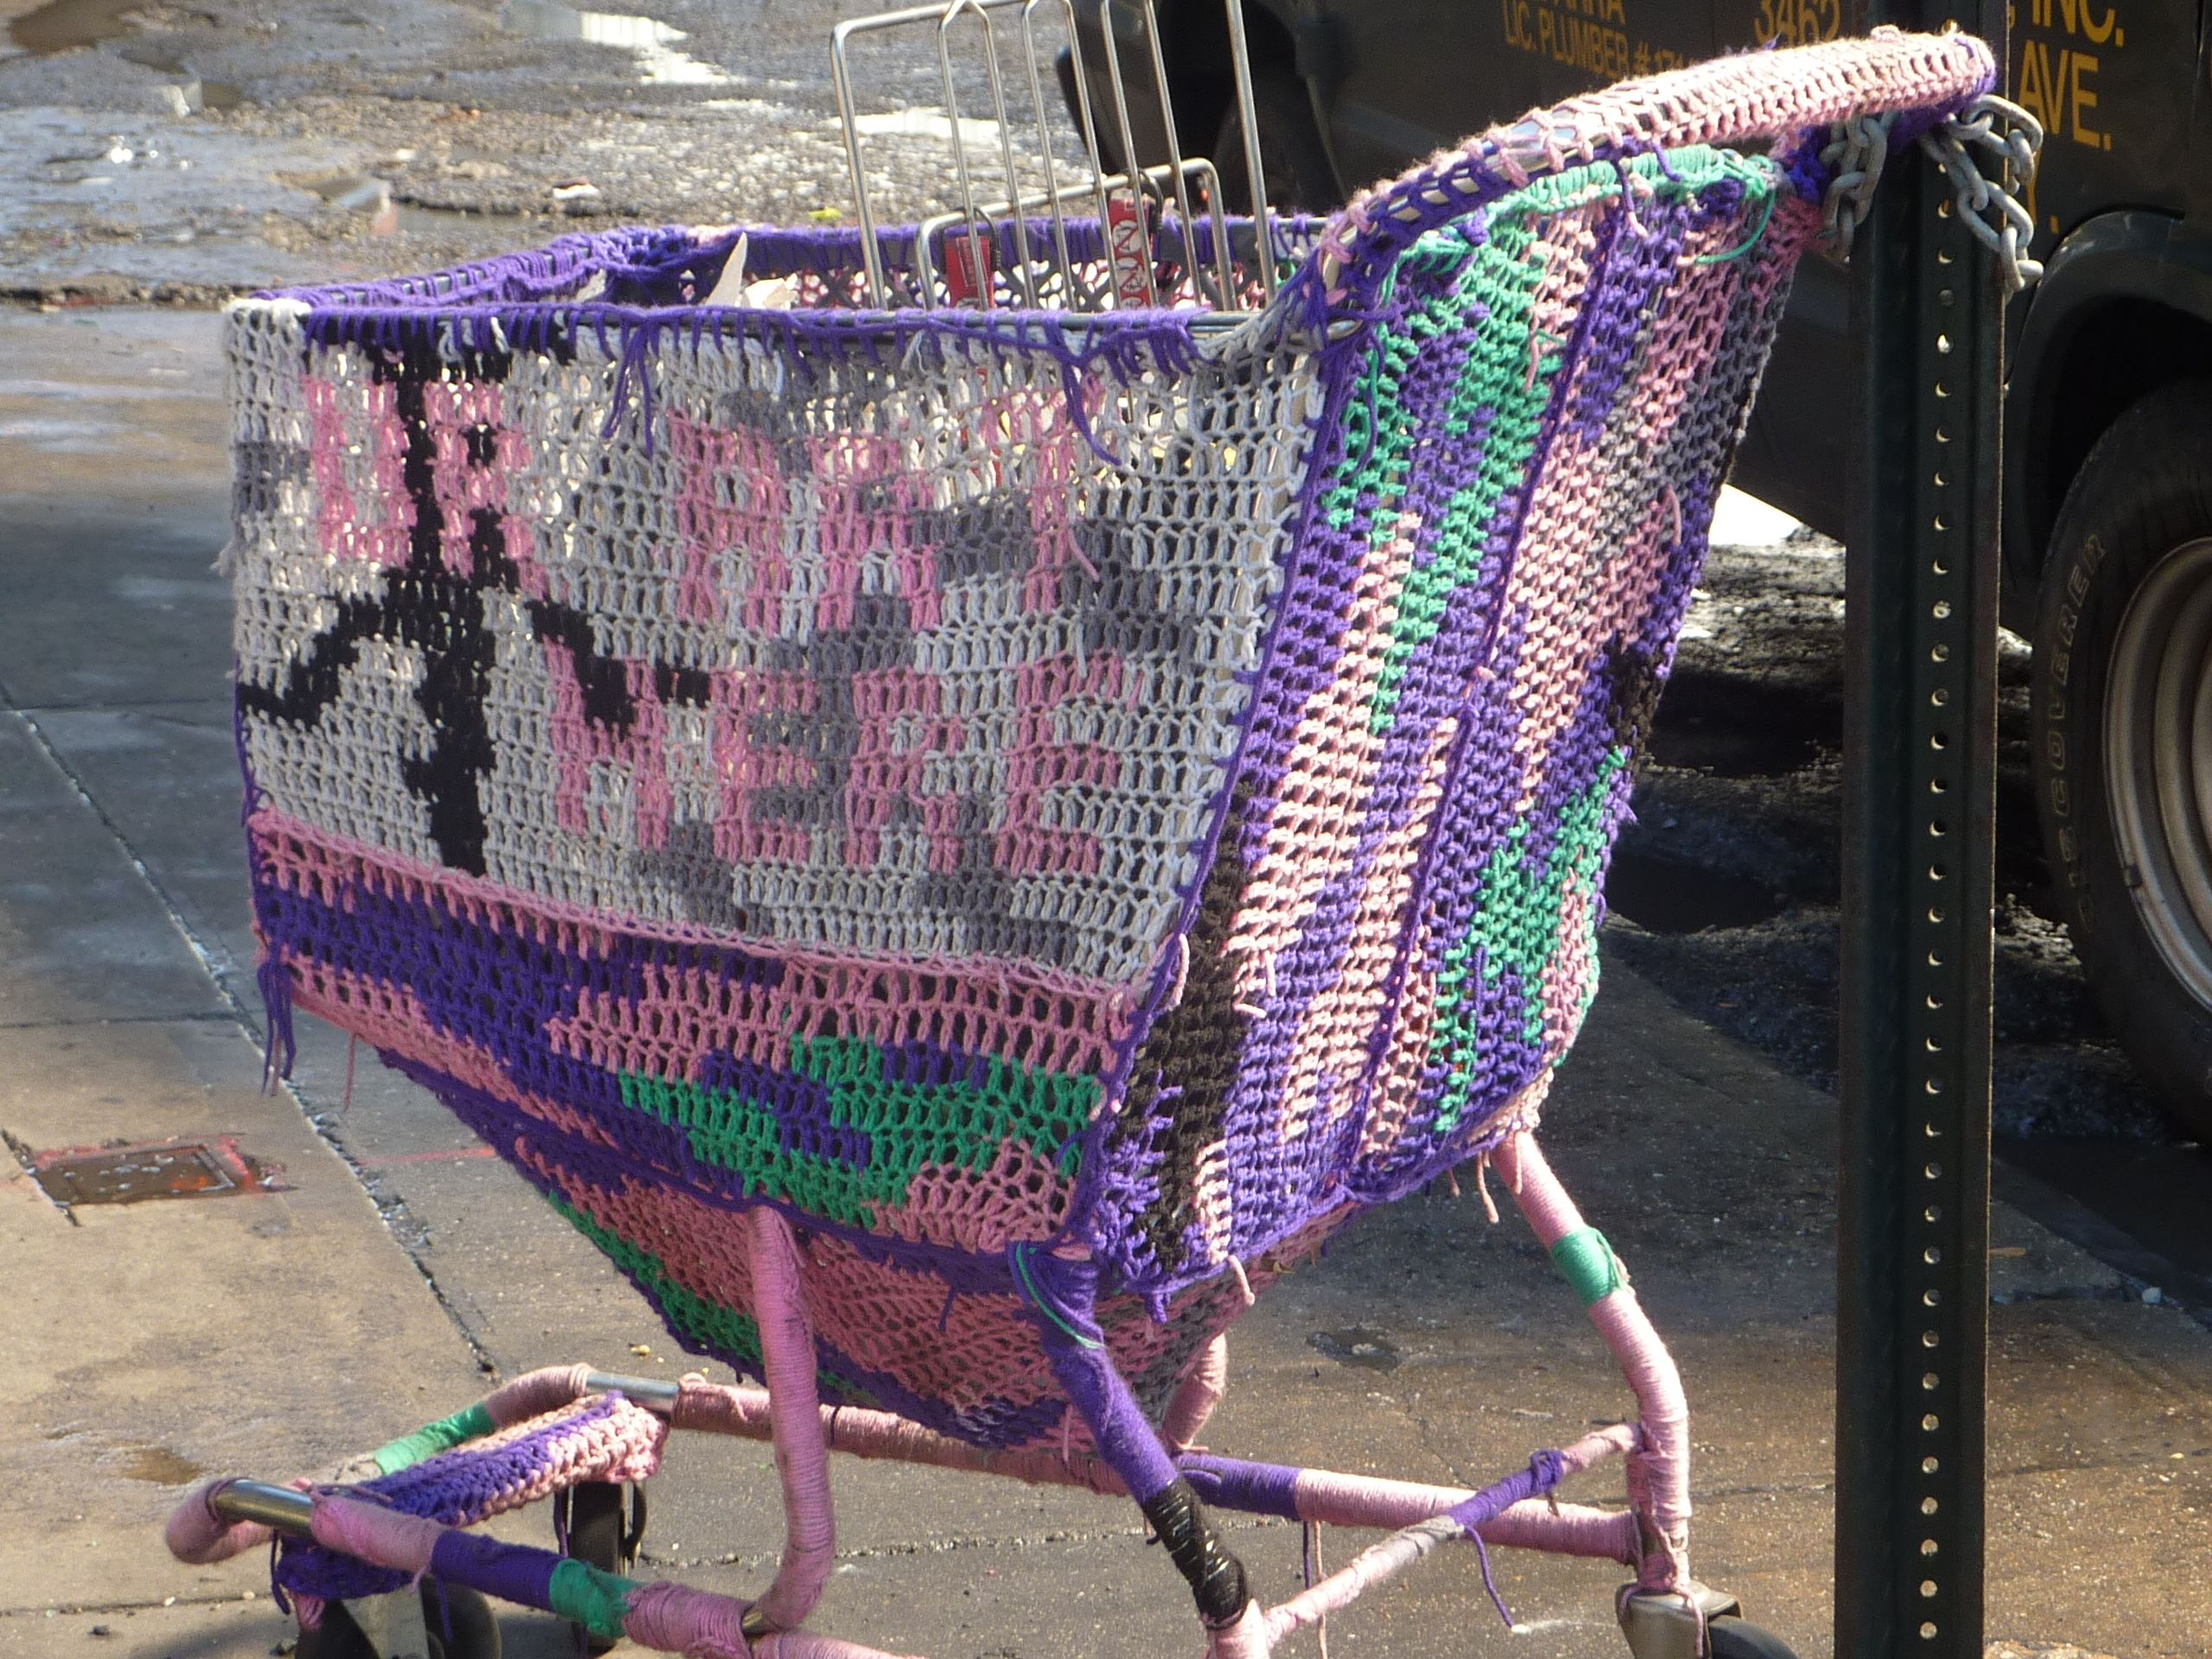 crocheted cart or piece of art? - Chelsea, NYC